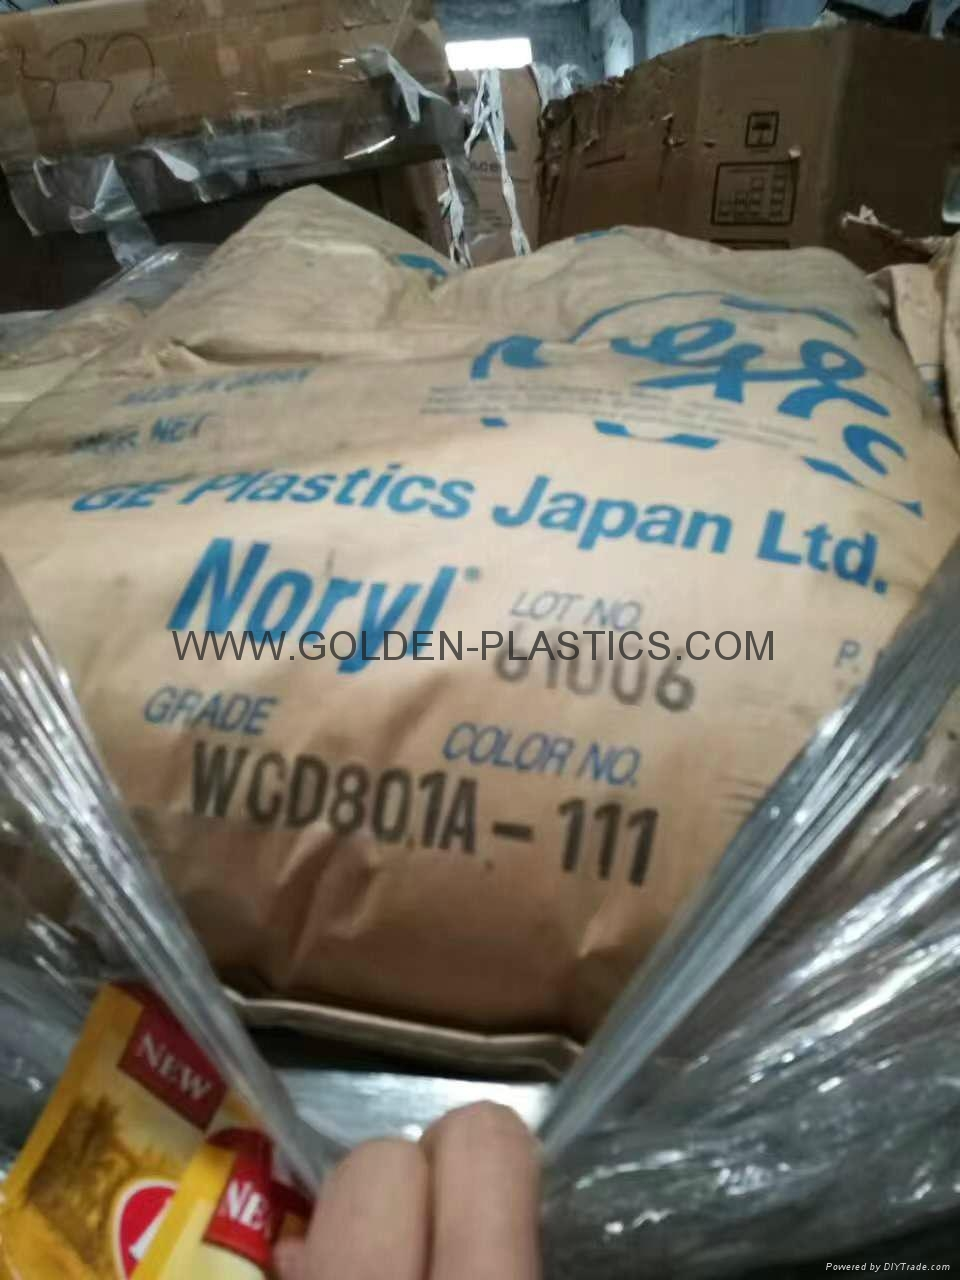 NORYL WCD801A